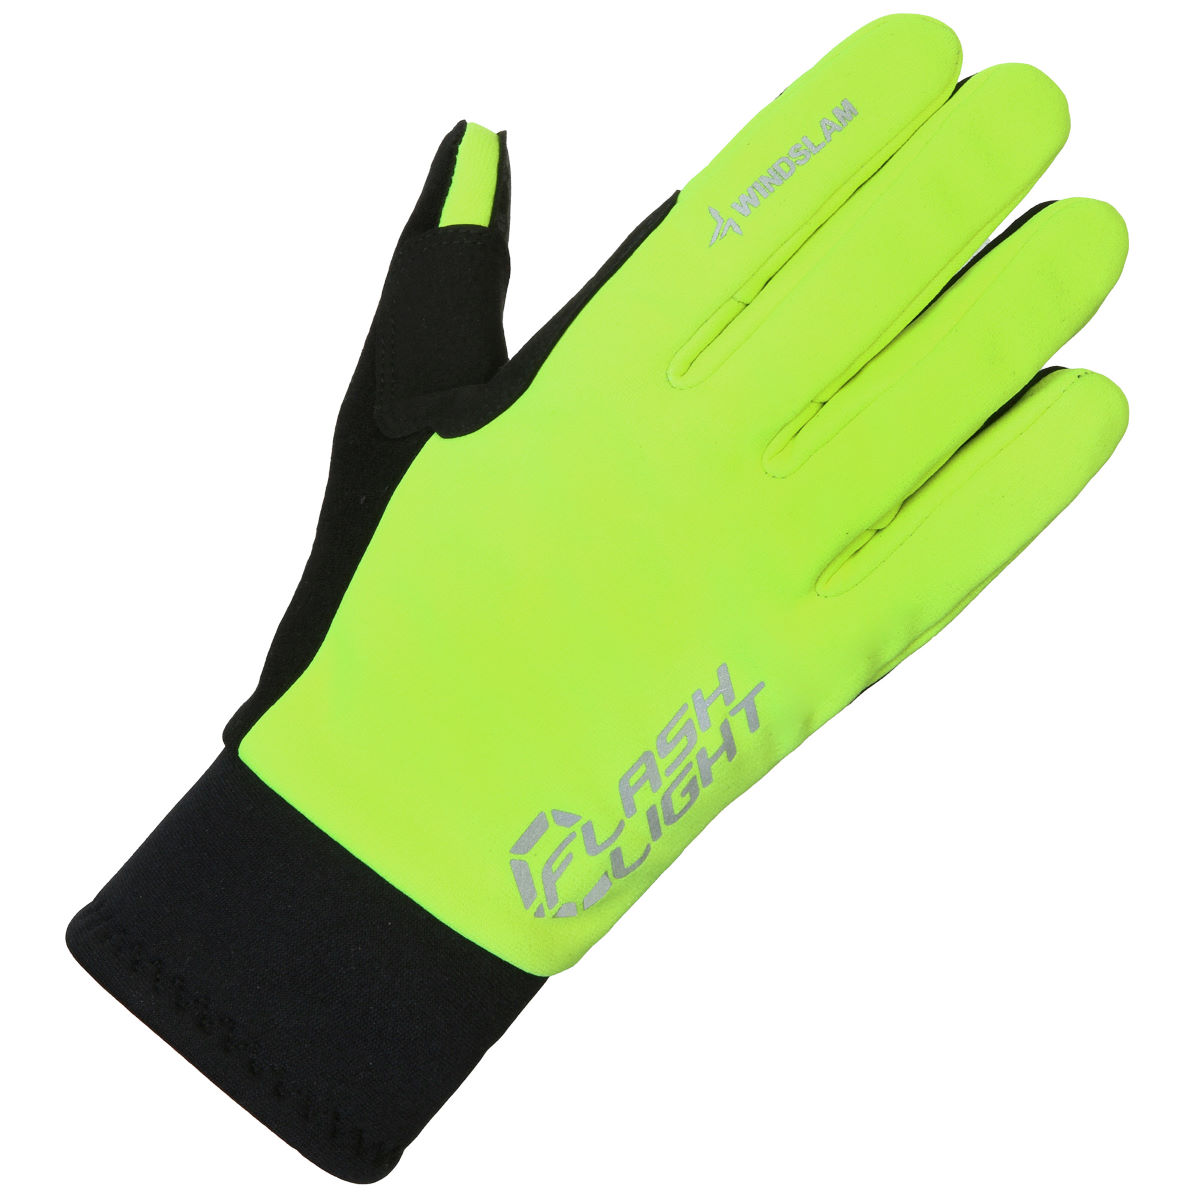 Gants cyclistes dhb Flashlight (coupe-vent) - XS Fluro Gants